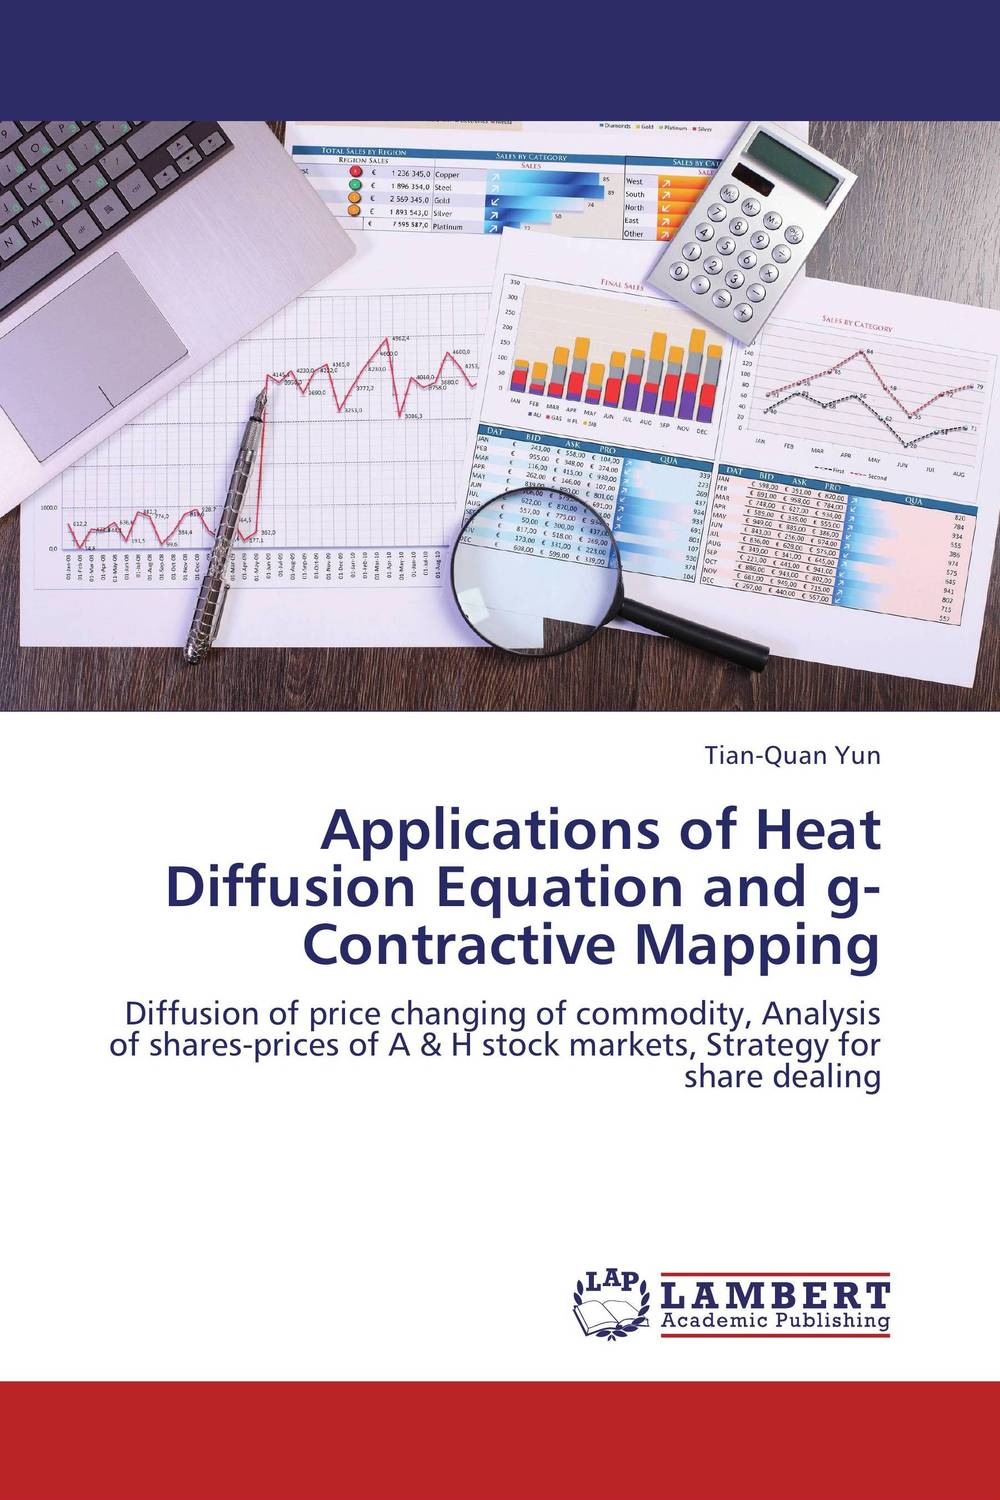 Applications of Heat Diffusion Equation and g-Contractive Mapping